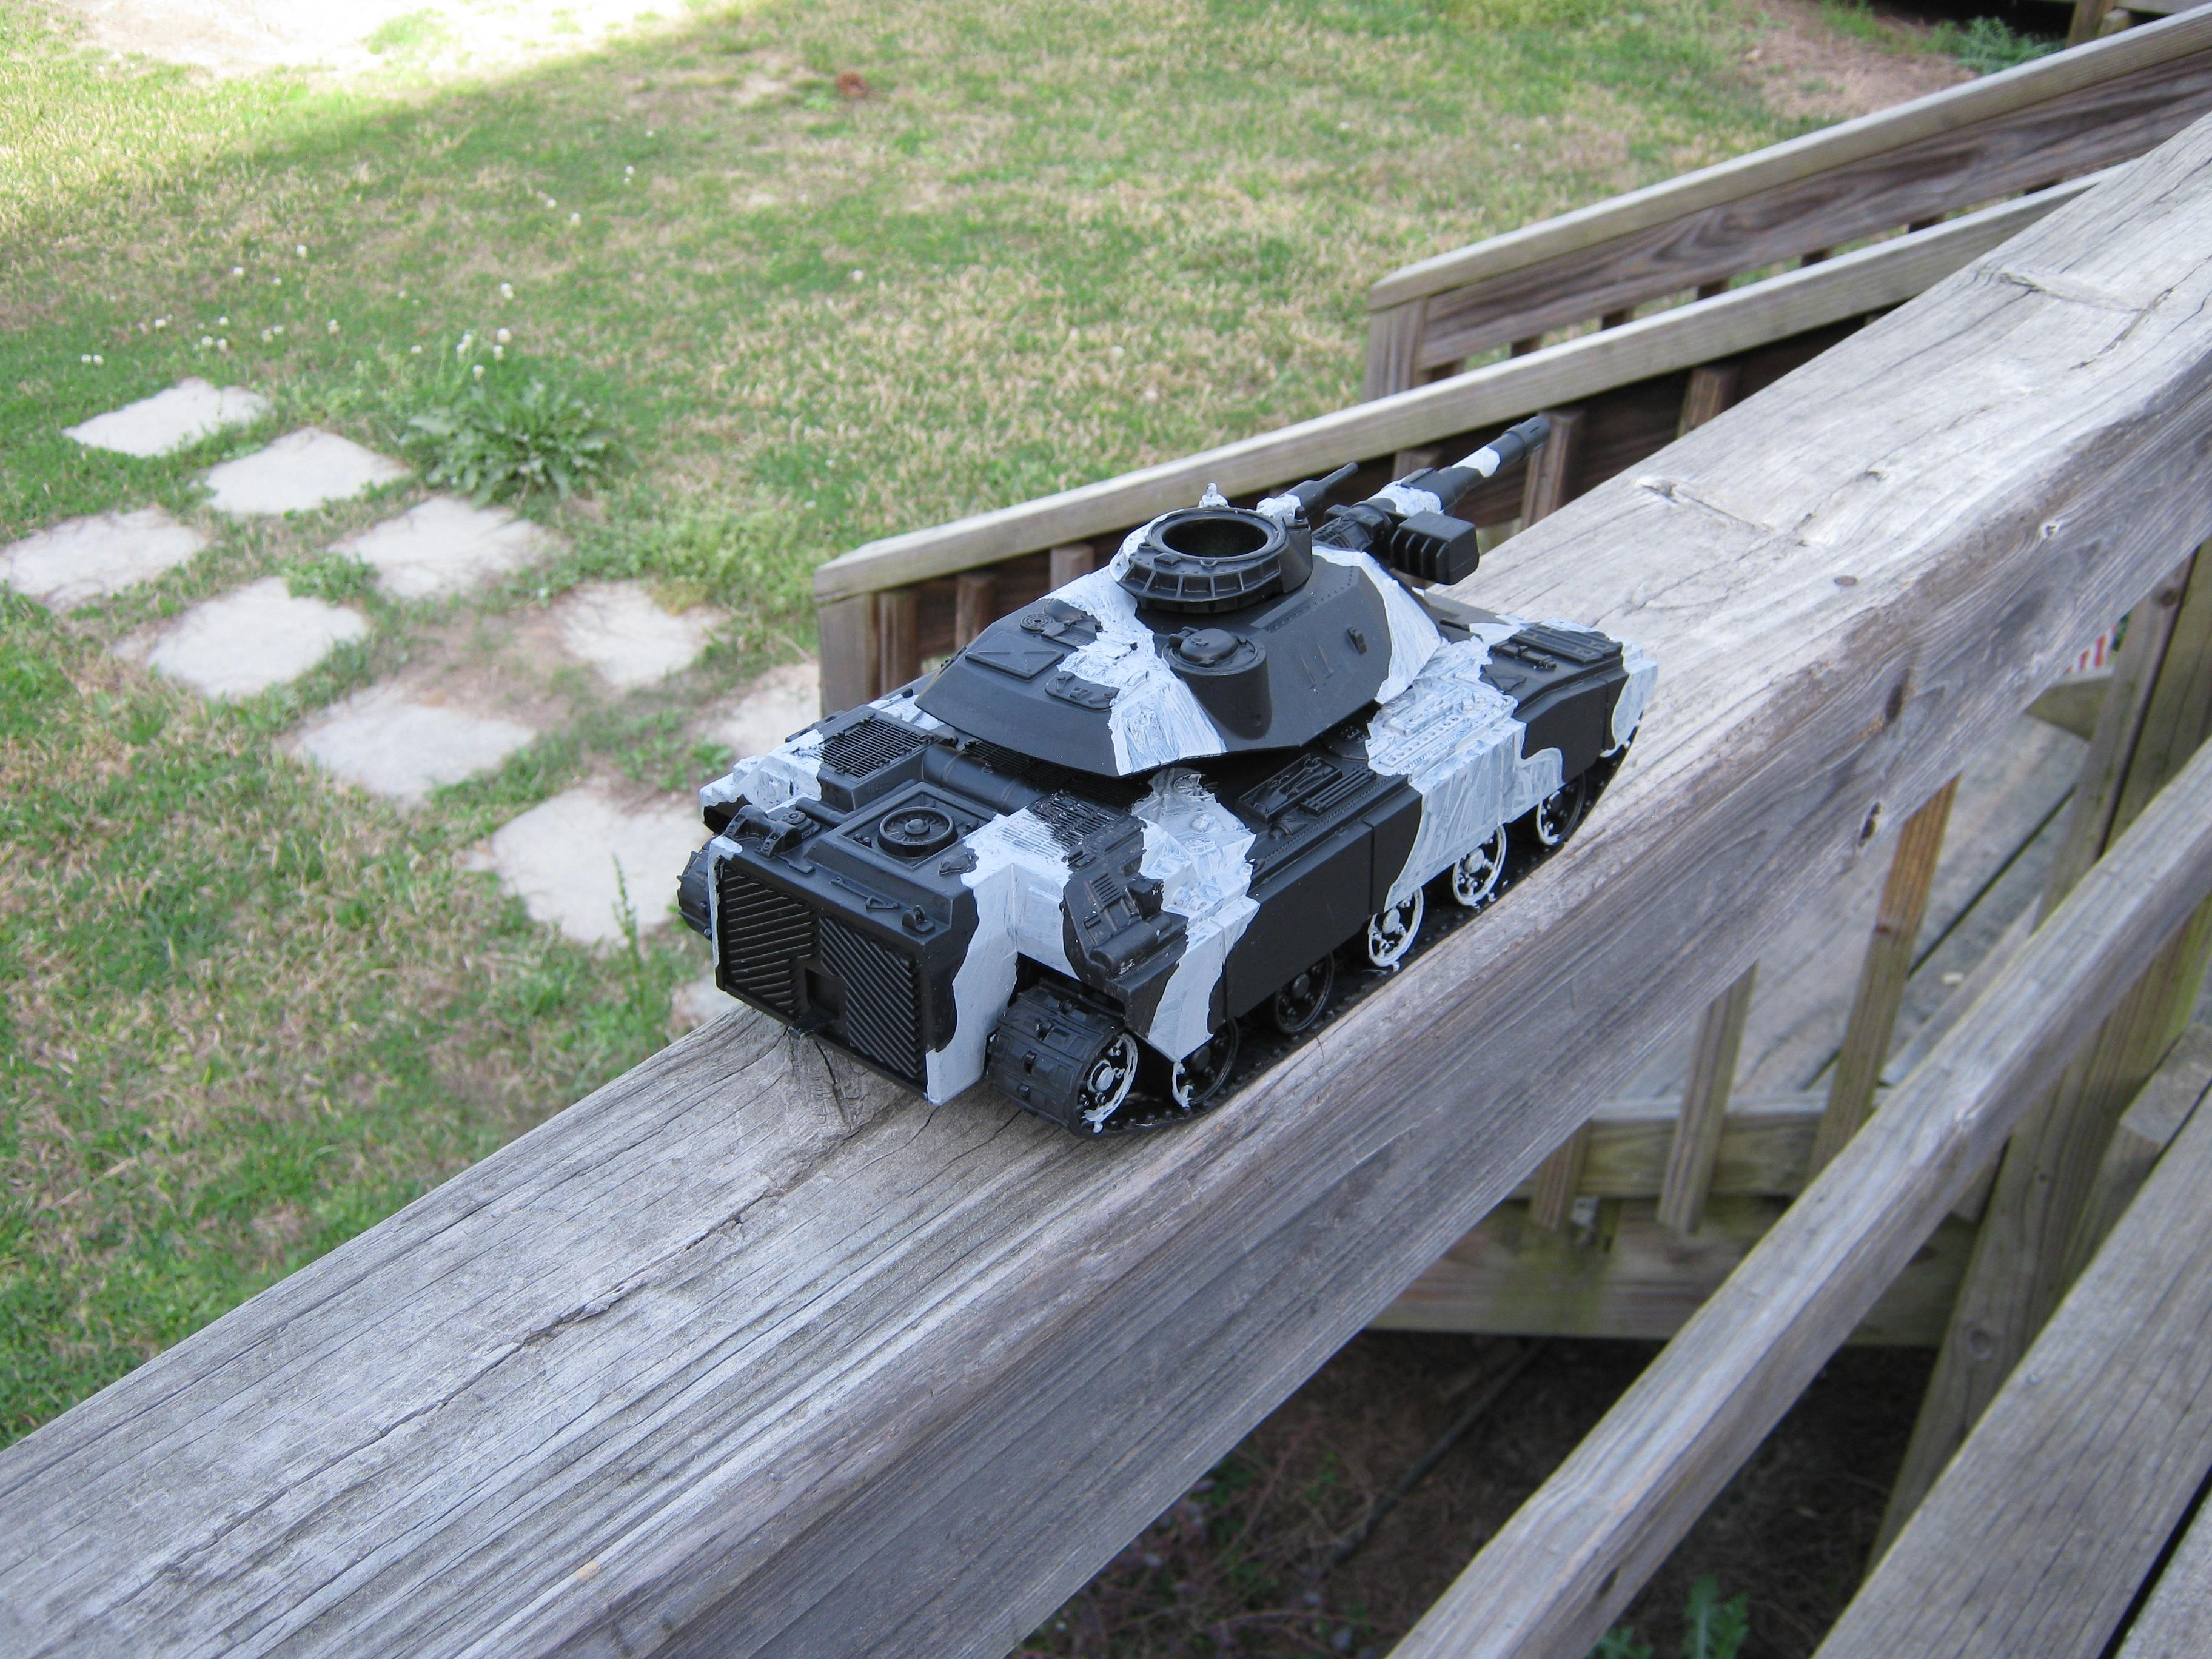 Conversion, G.i. Joe, Mobat, Super-heavy, Tank, Toy